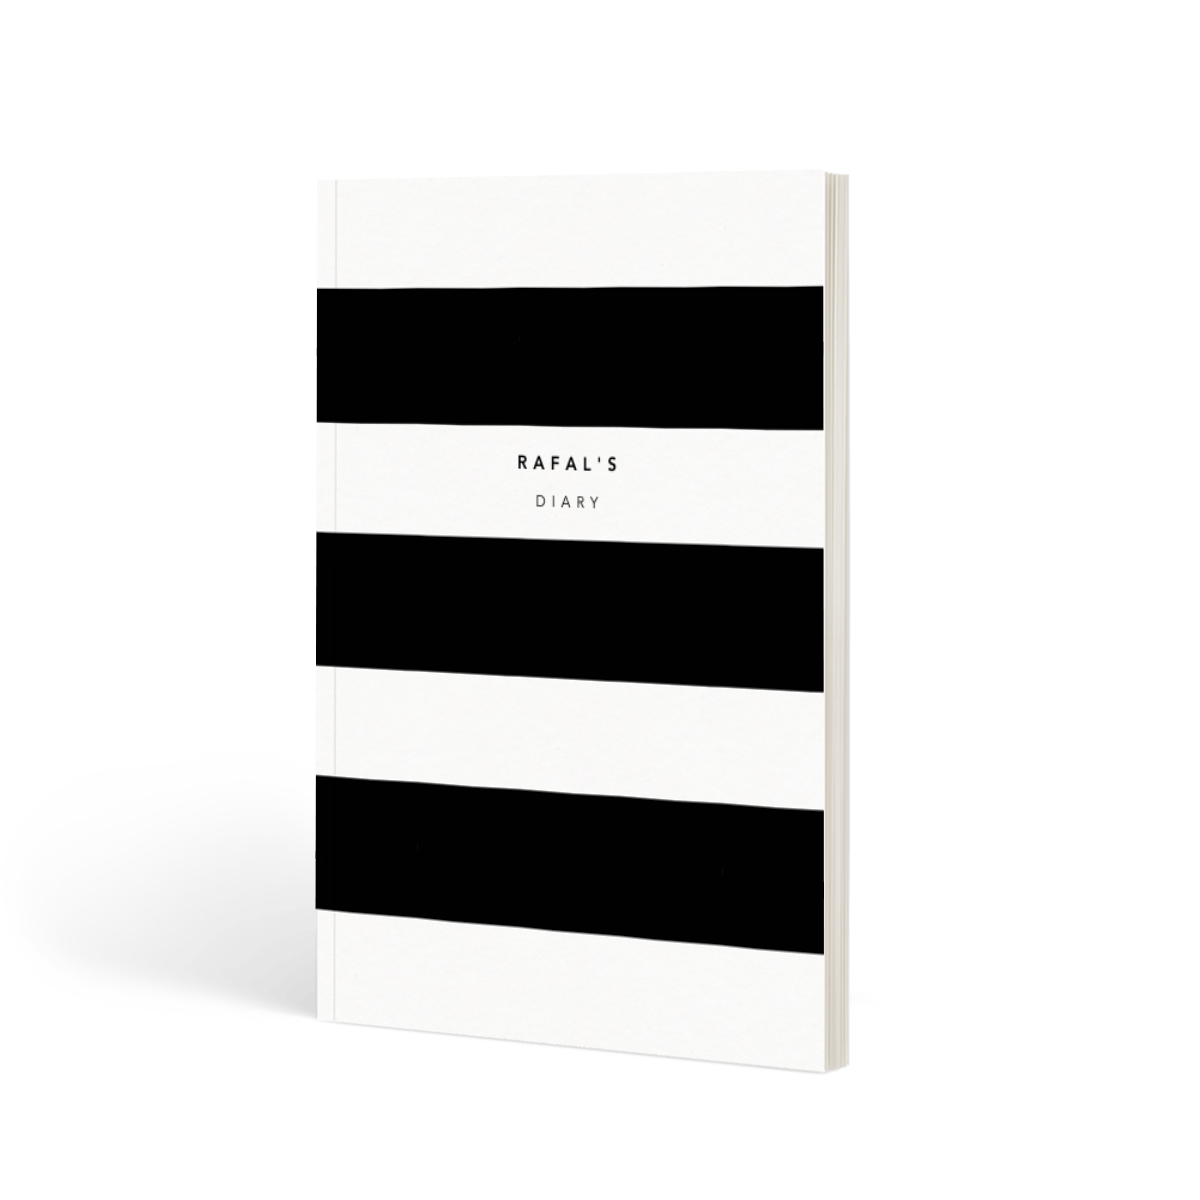 Https%3a%2f%2fwww.papier.com%2fproduct image%2f53768%2f7%2fblack stripe 12948 front 1542108294.png?ixlib=rb 1.1